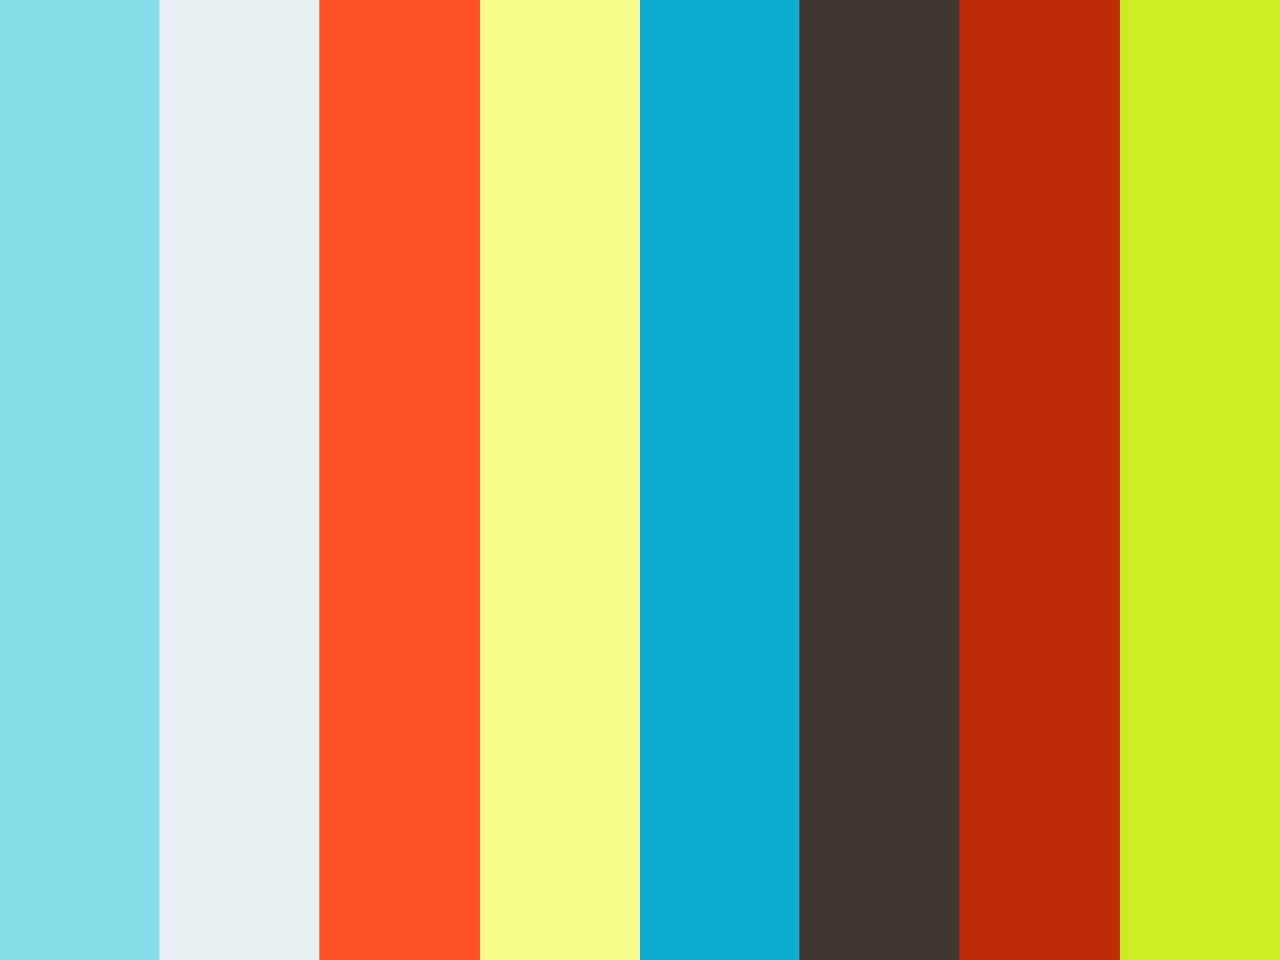 Upwind in Gale Force 8